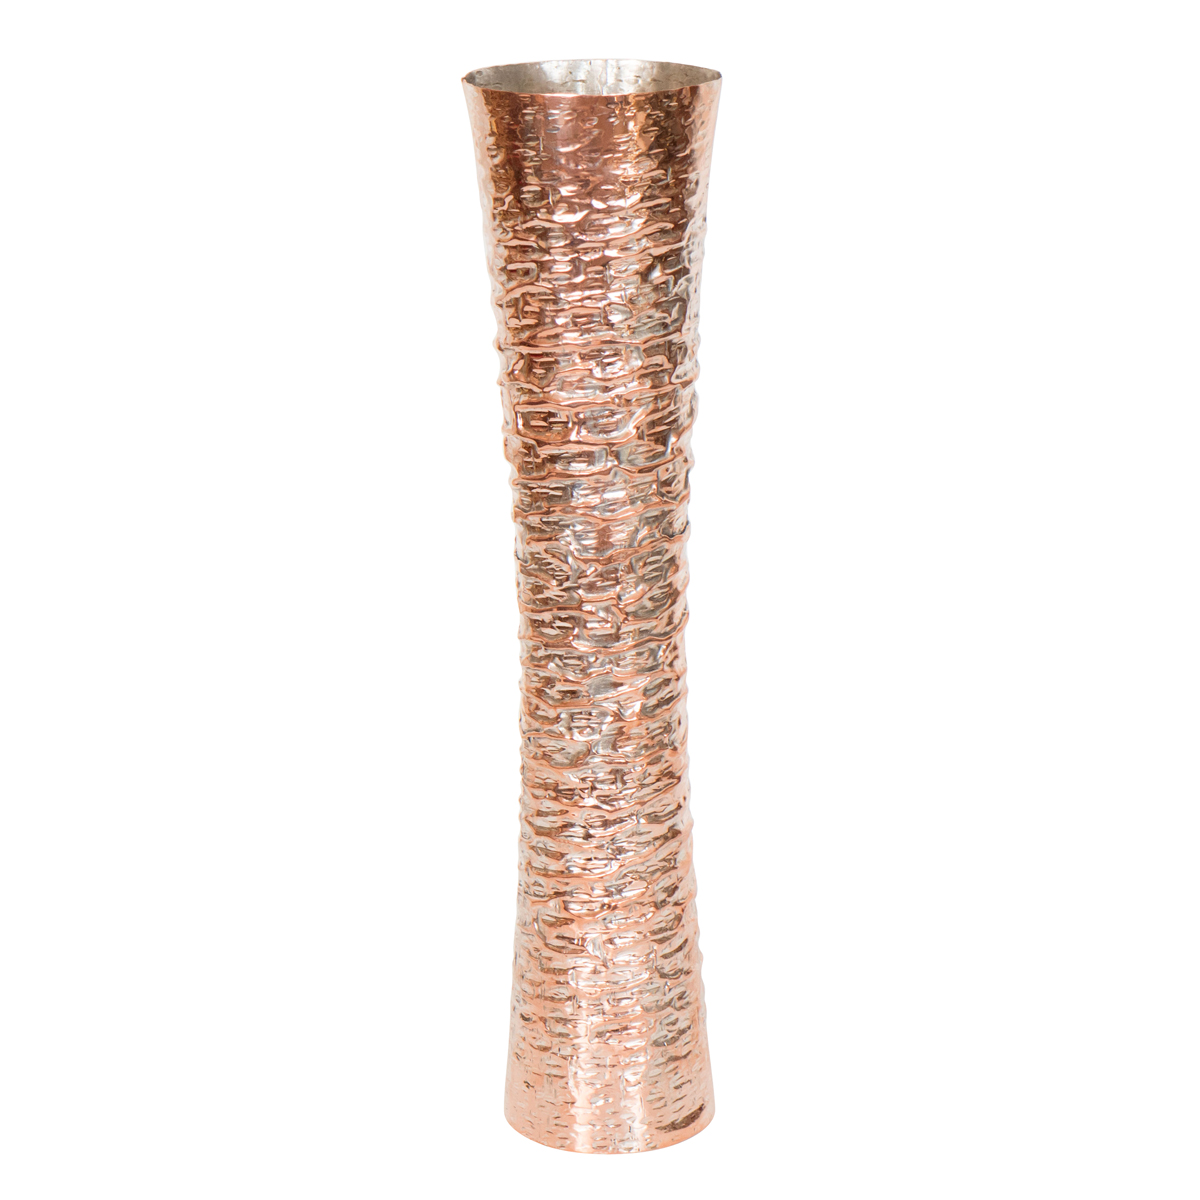 Hammered silver plated and copper vase Vases John  : 243A385 1200 from www.johnsalibello.com size 1200 x 1200 jpeg 332kB